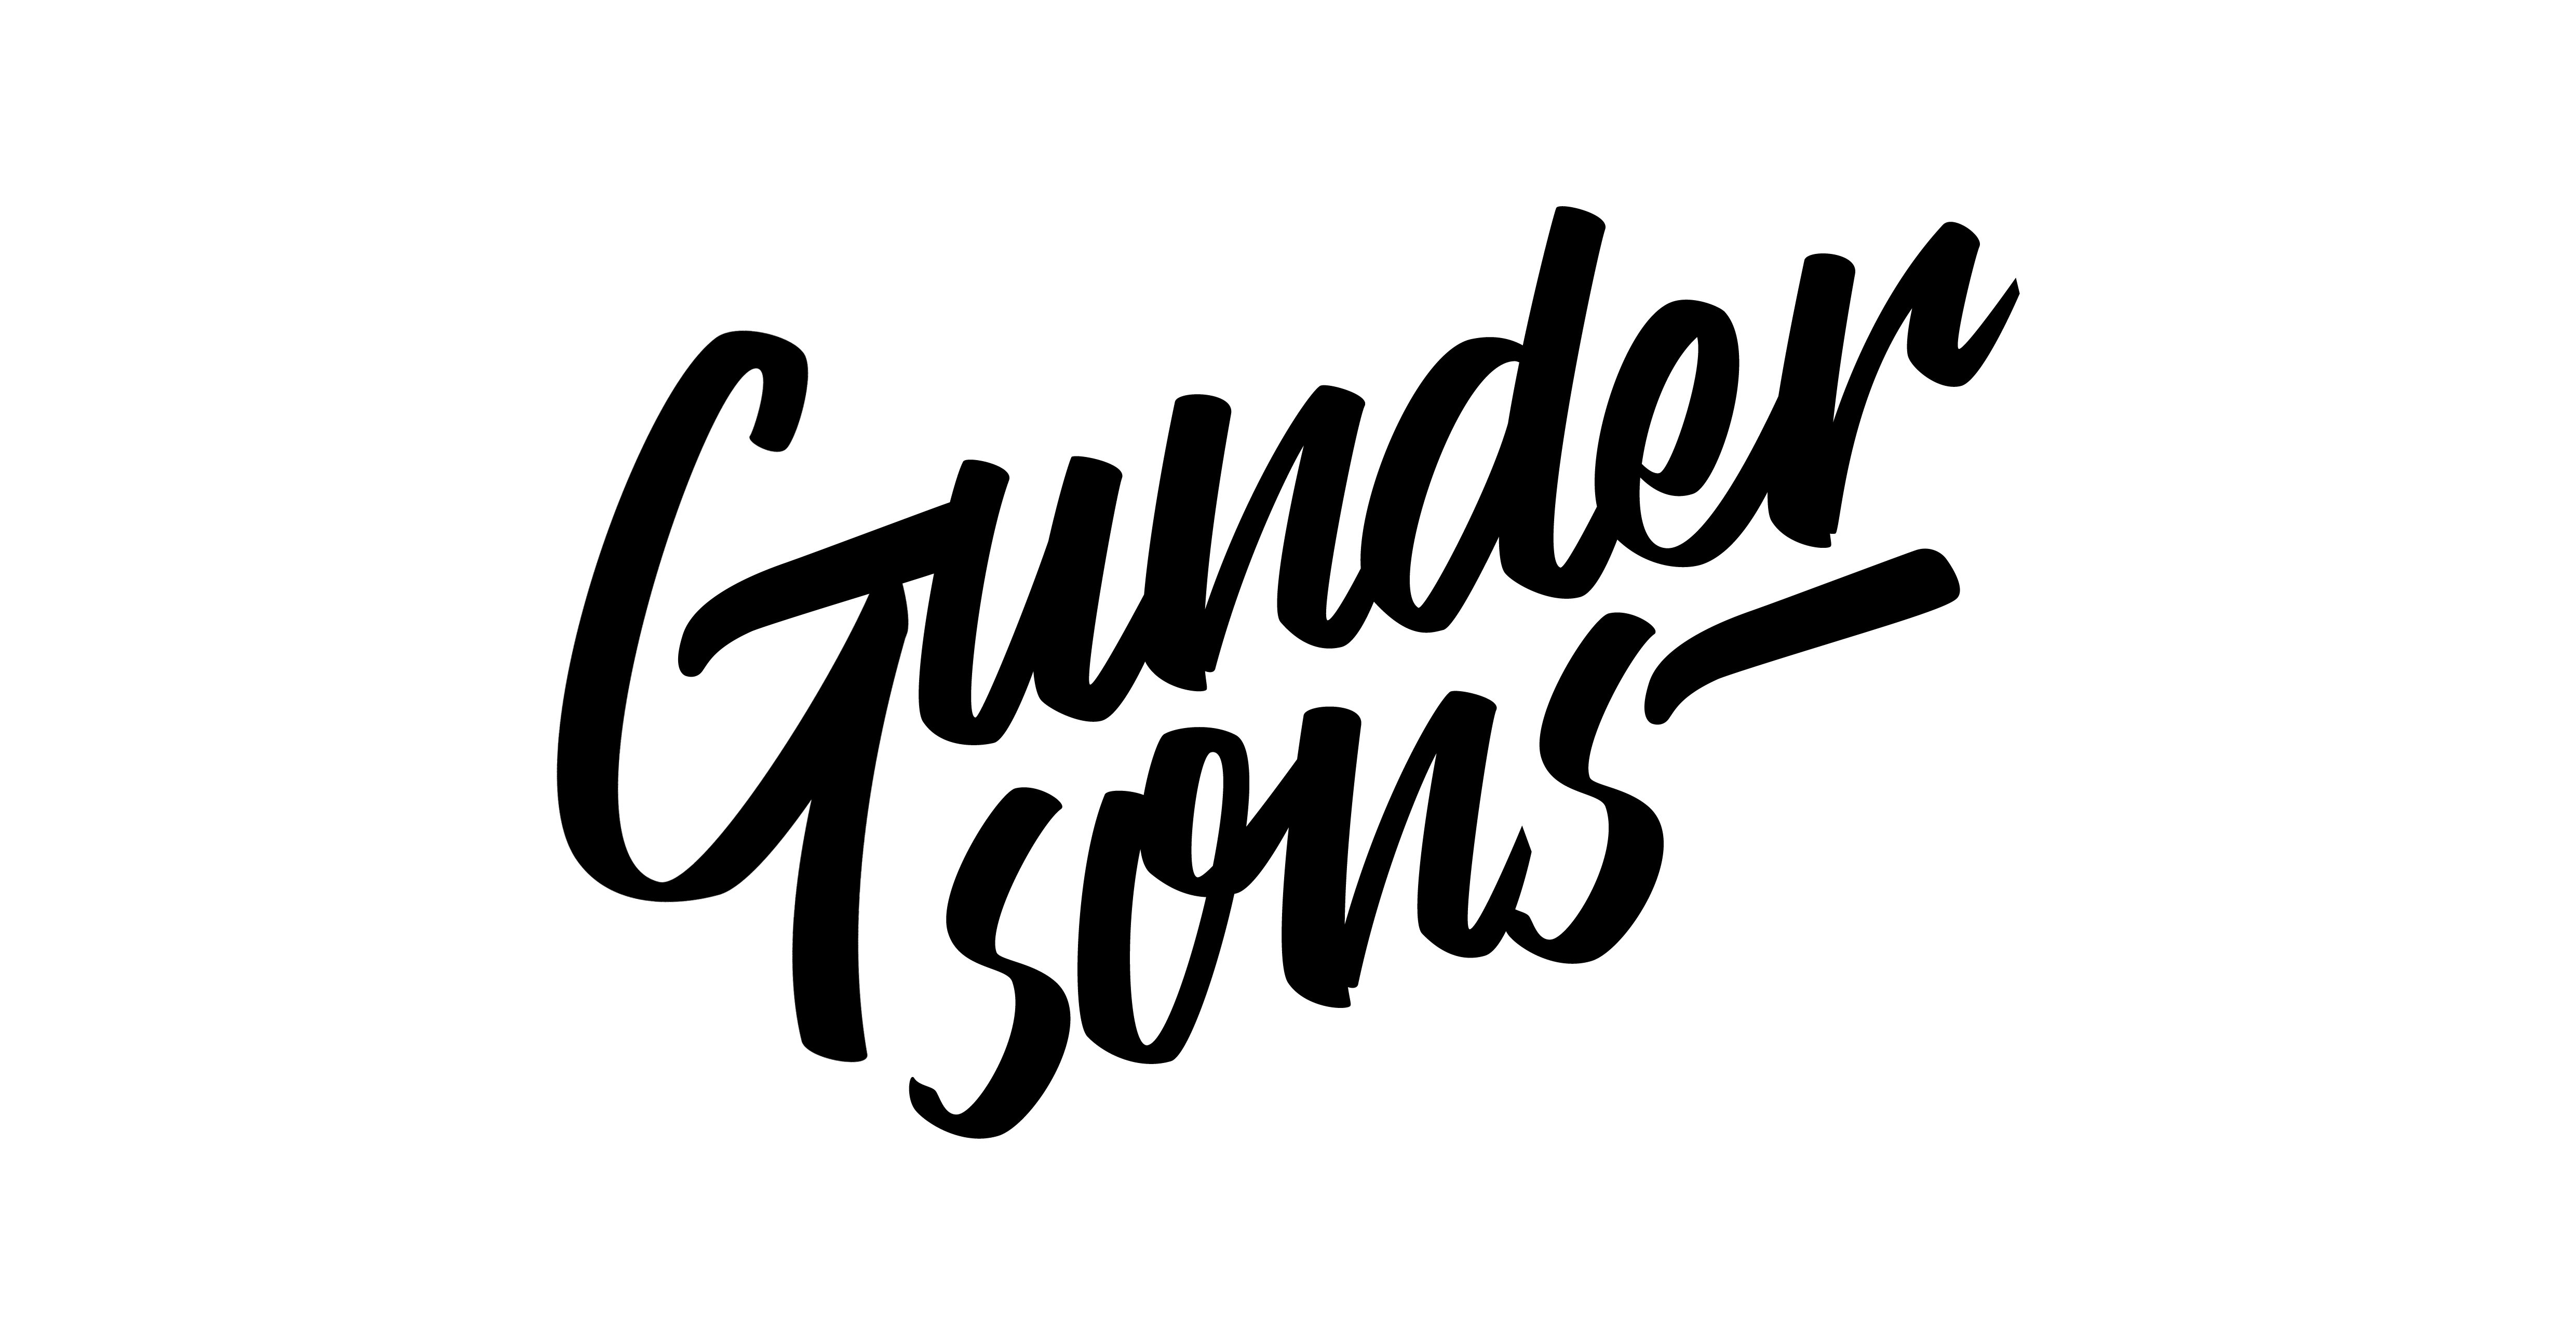 GUNDERSONS™ - Design Studio / Poster Shop